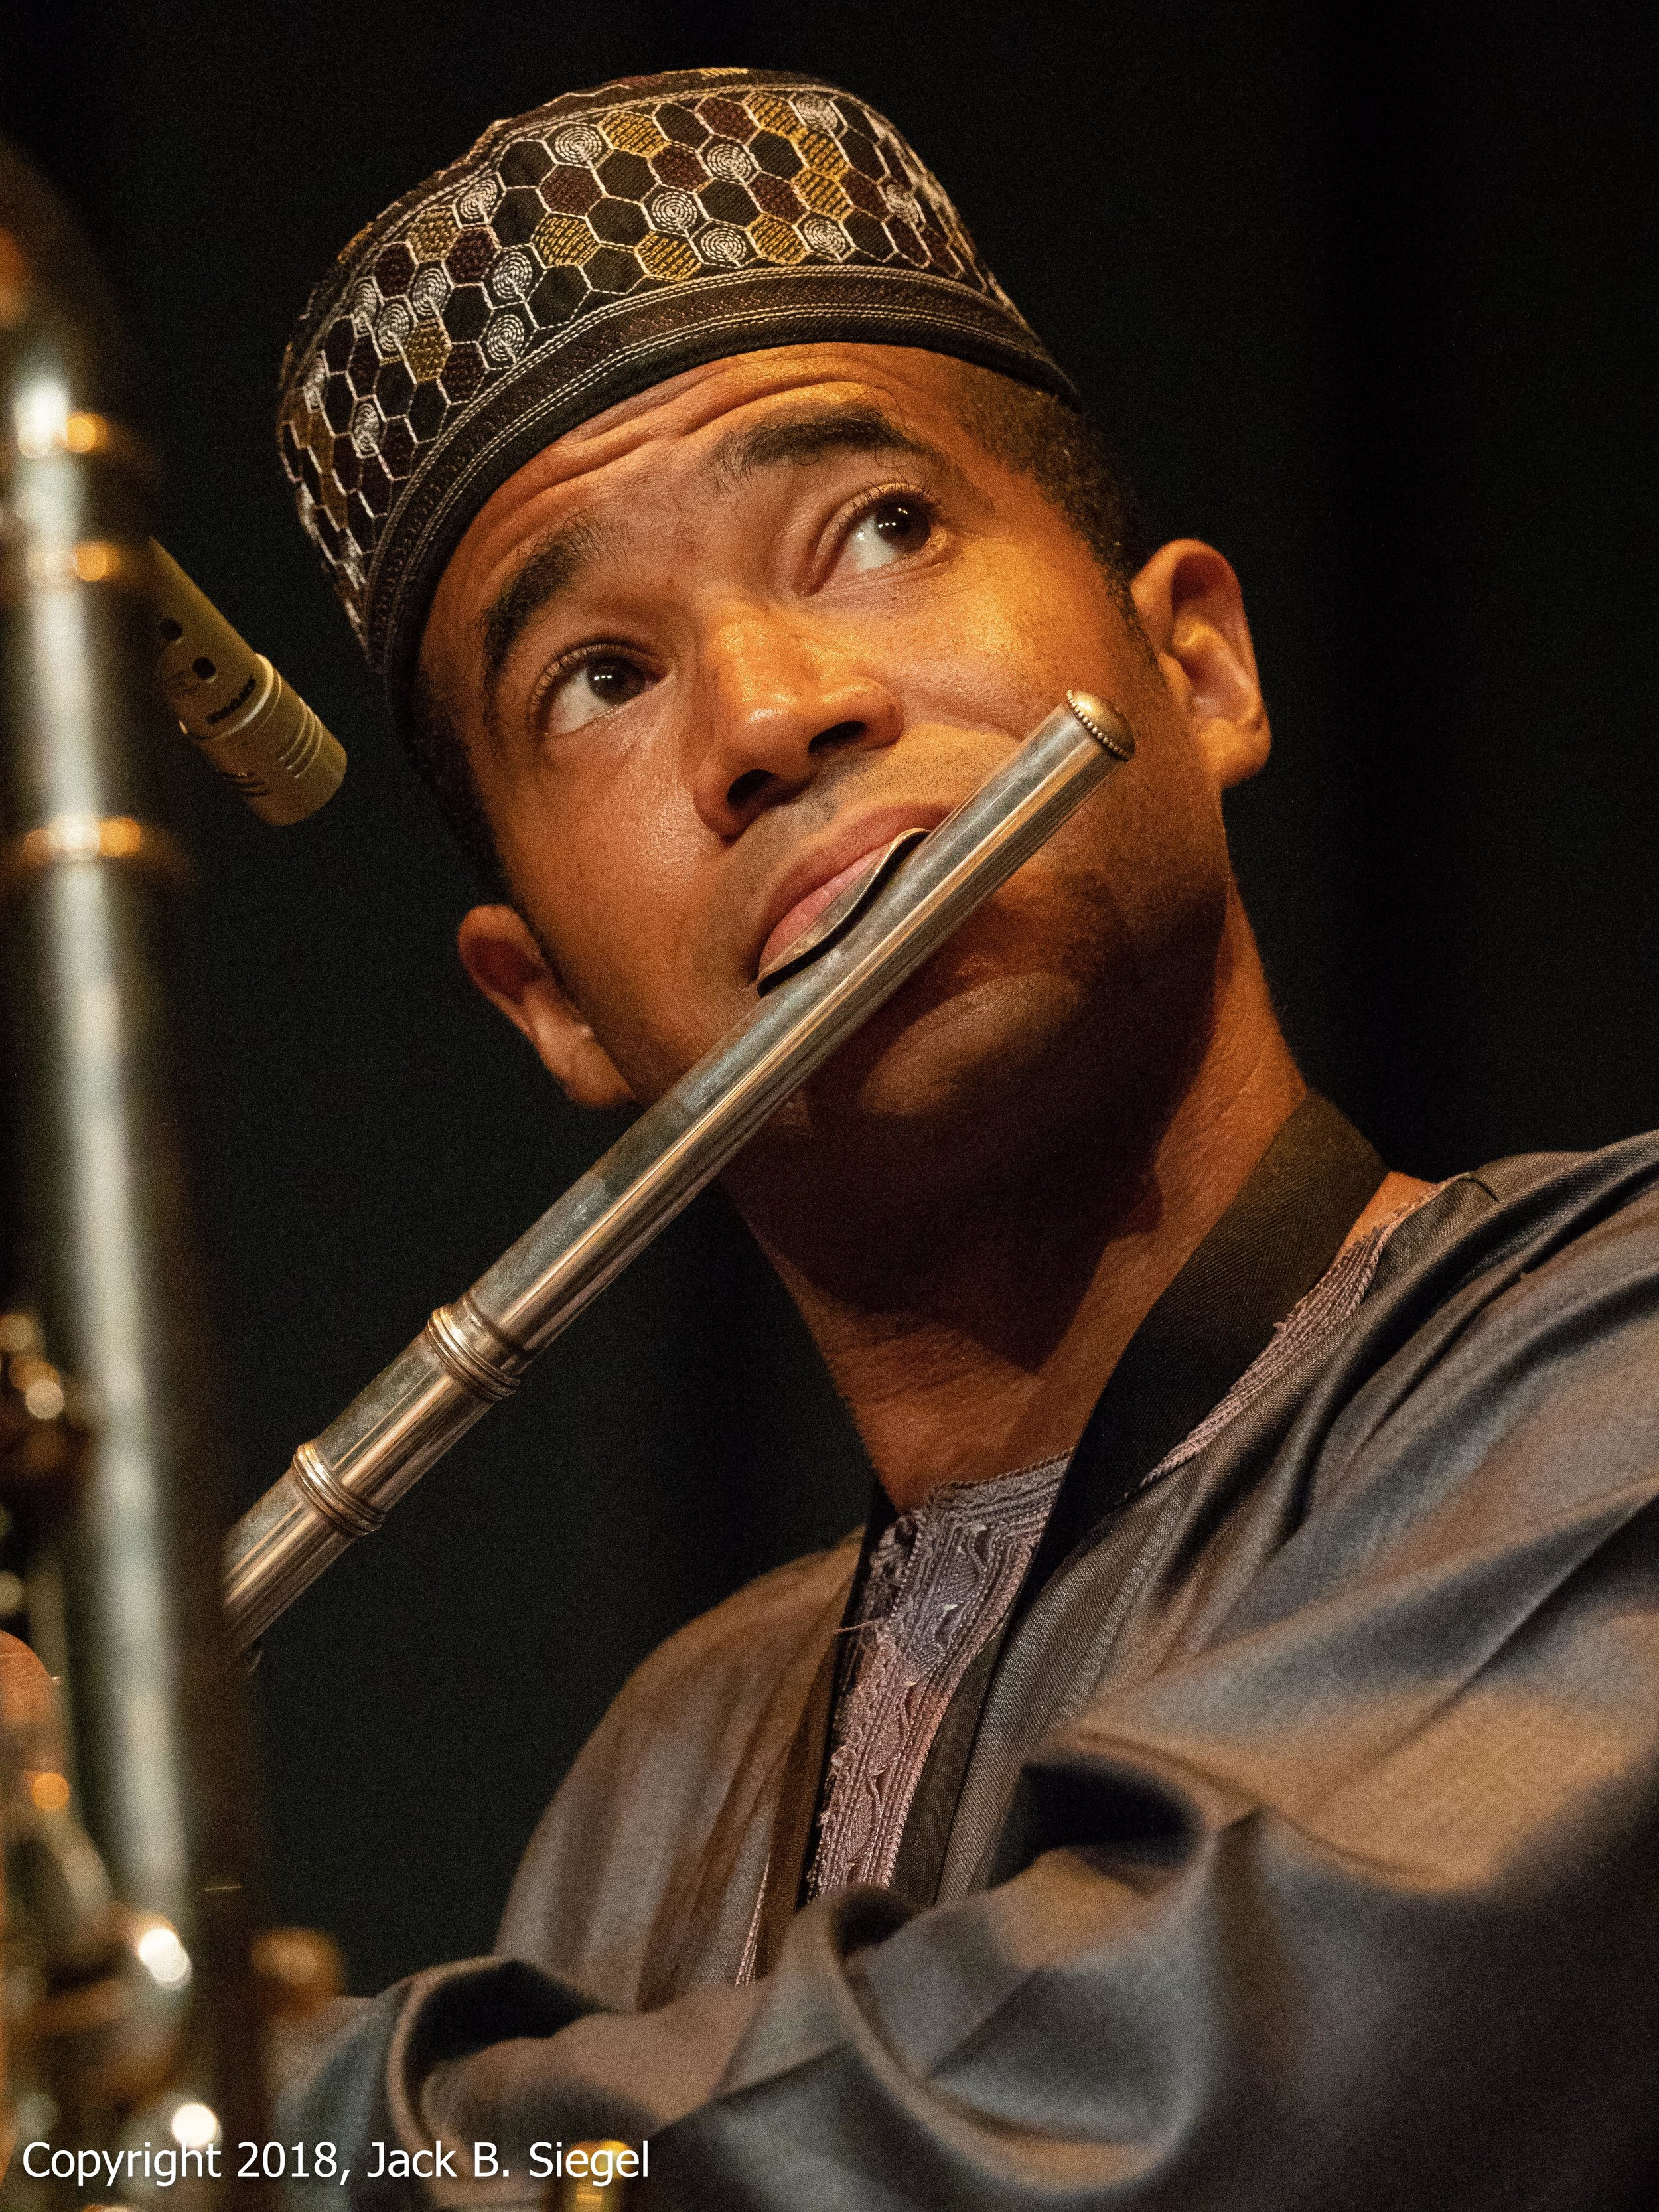 _1010033_Copyright 2018 jpeg_Adam Zanolini with the Great Black Music Ensemble in Colloraboration with AACM.jpg